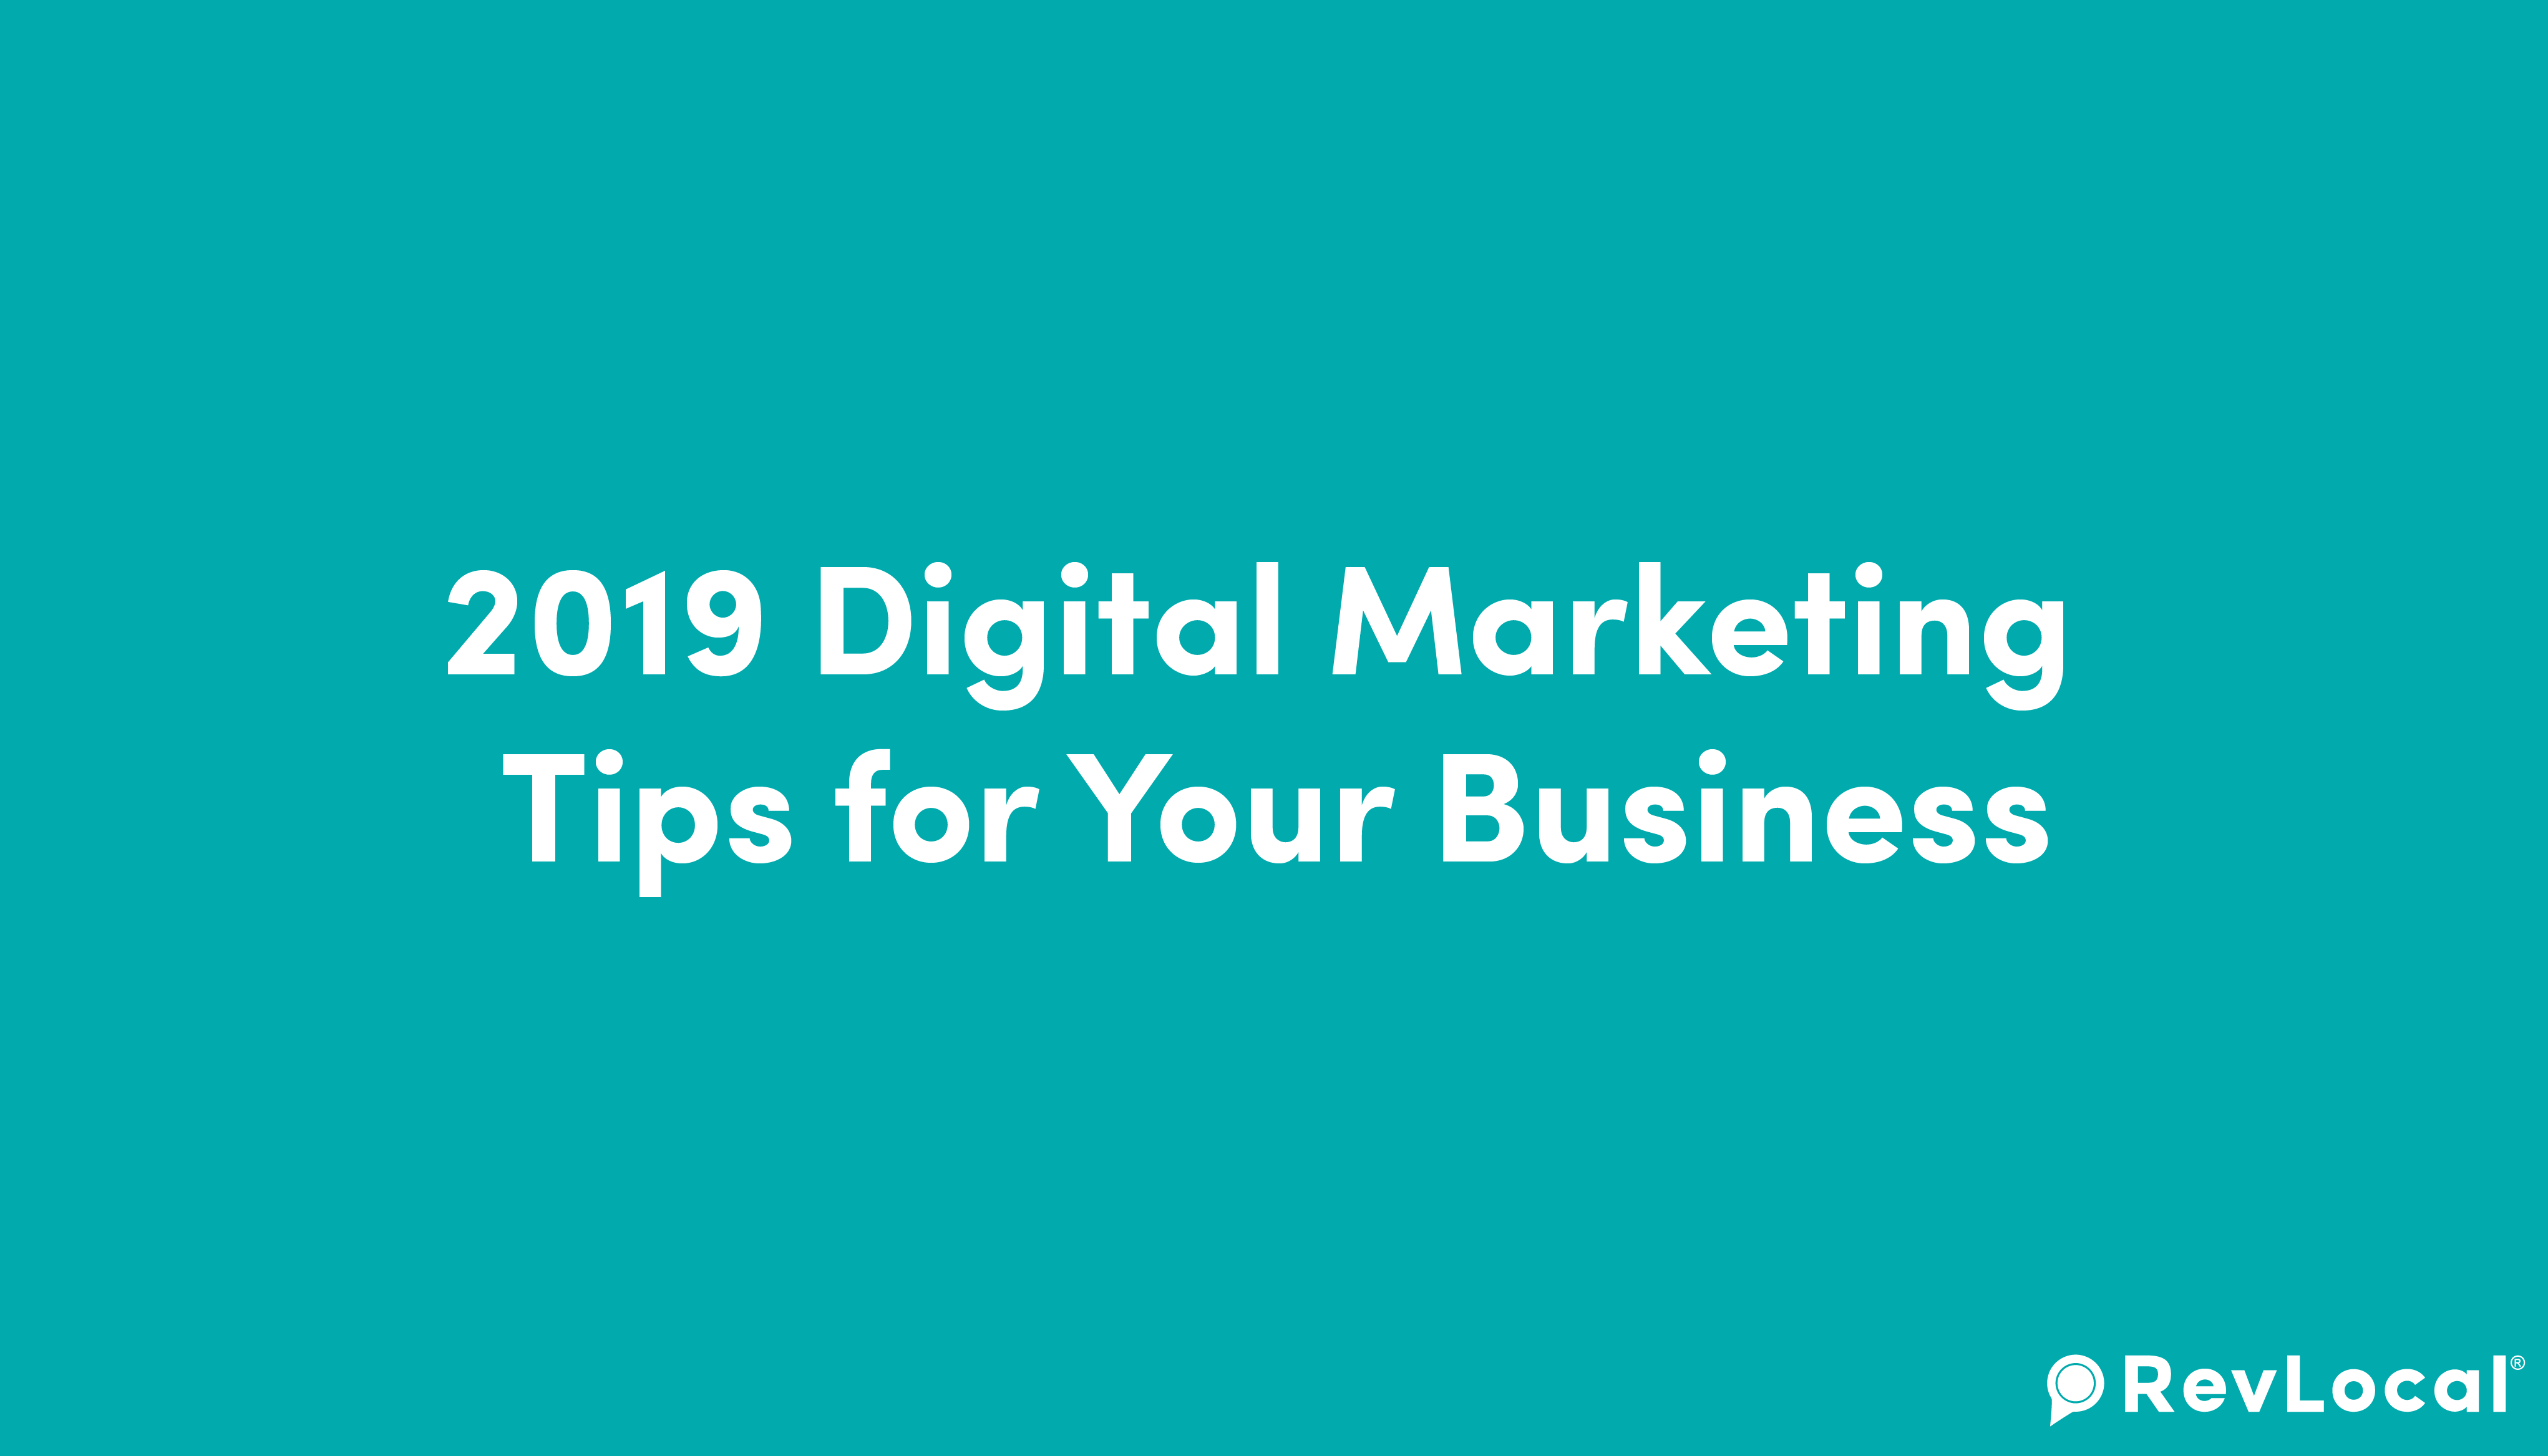 2019 Digital Marketing Tips for Your Business